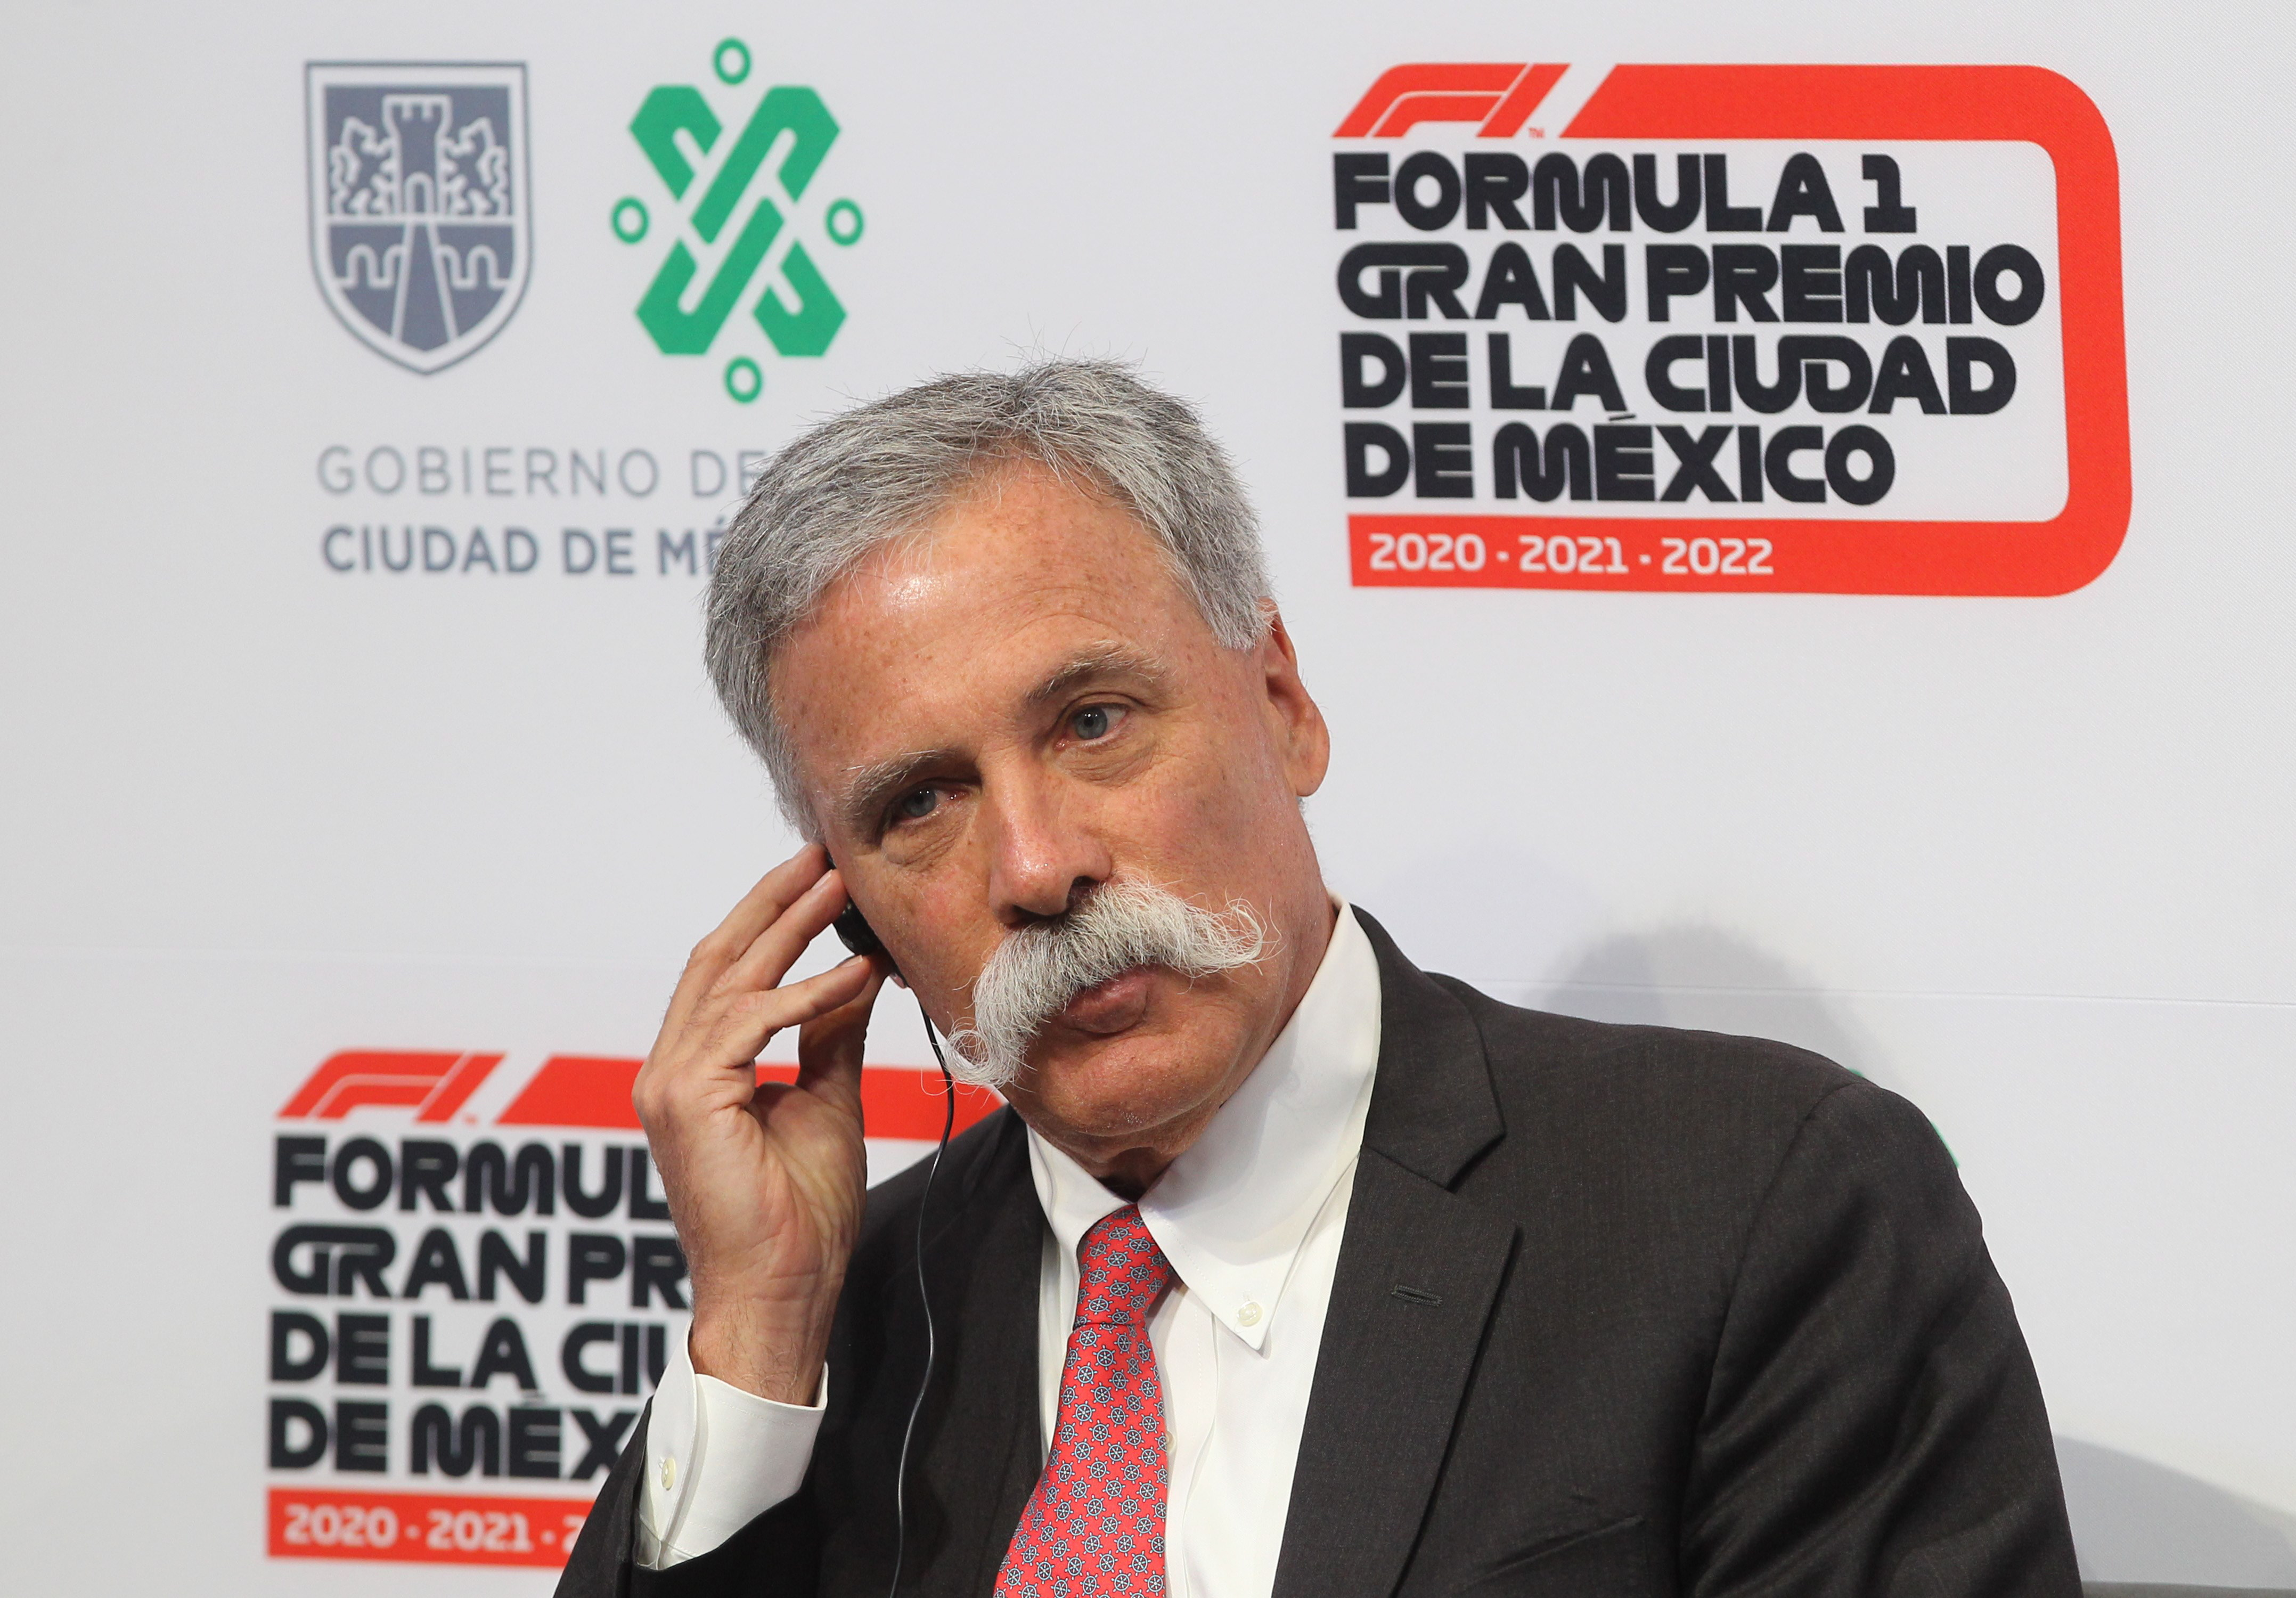 Formule 1 CEO Chase Carey